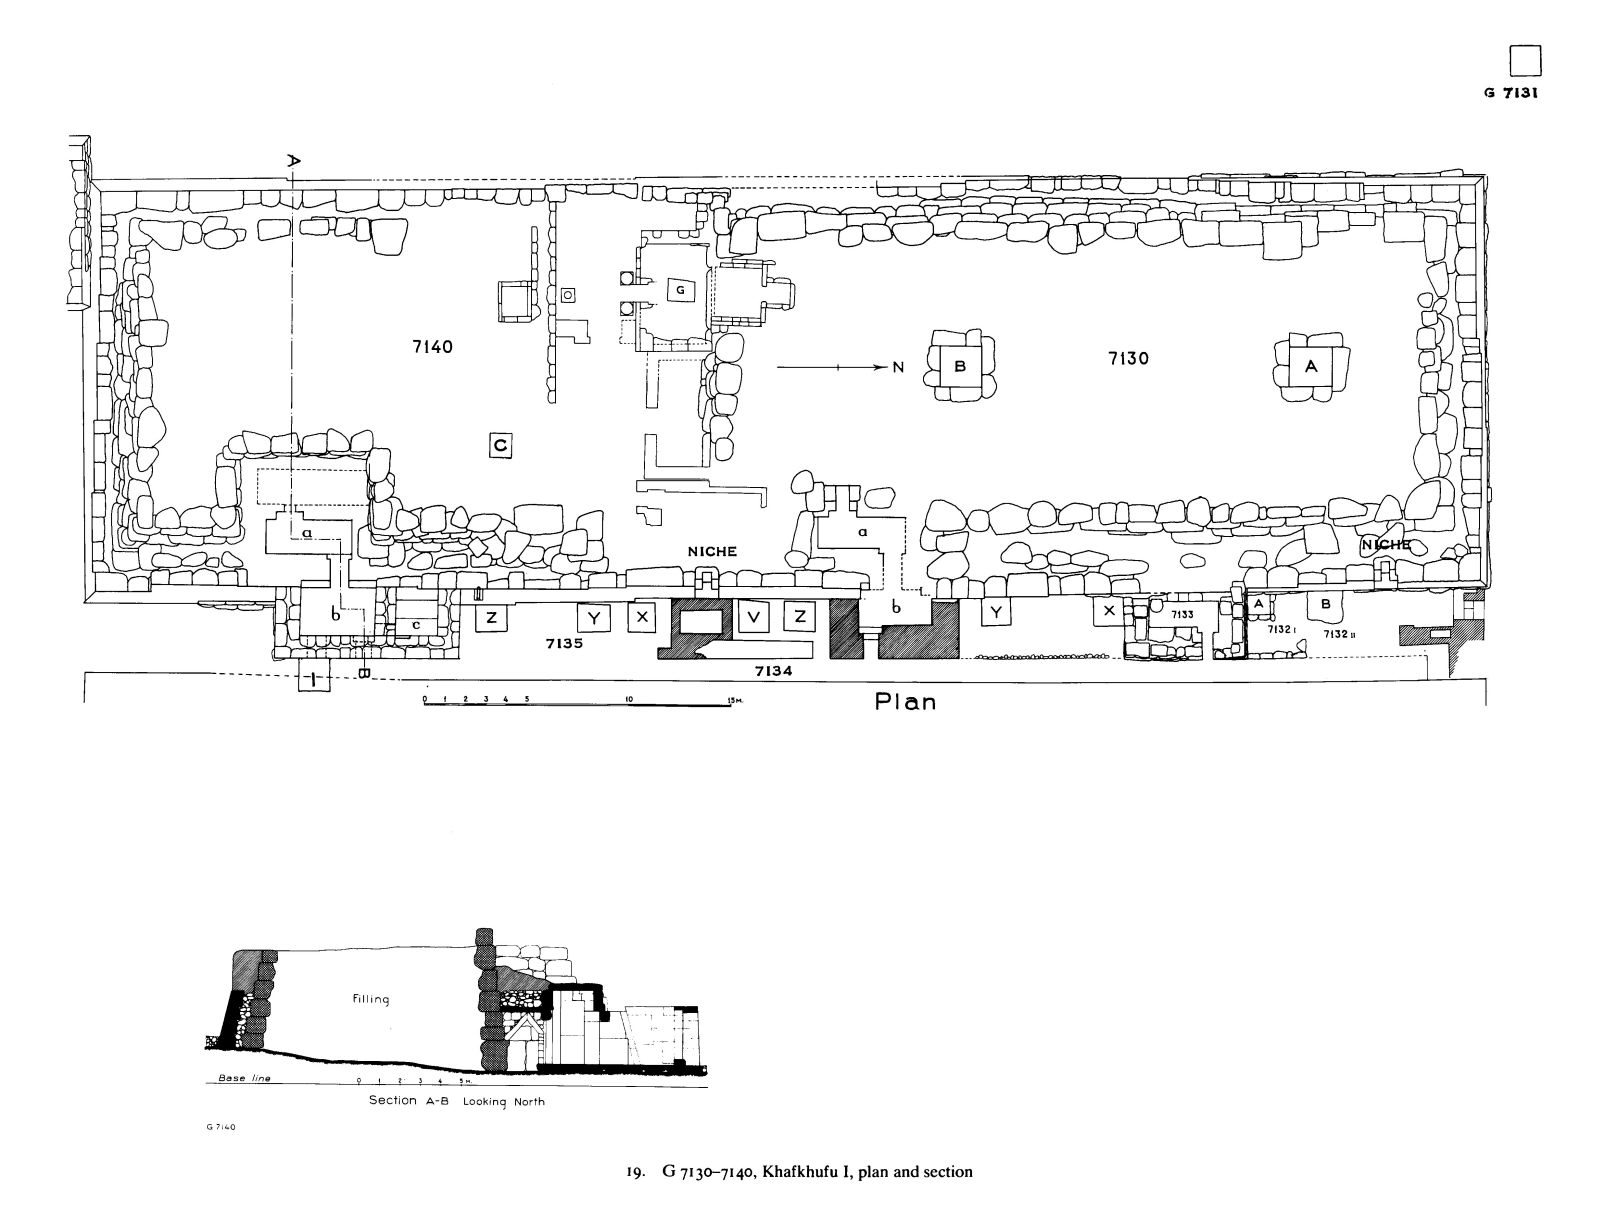 Maps and plans:  7130-7140, Plan and section